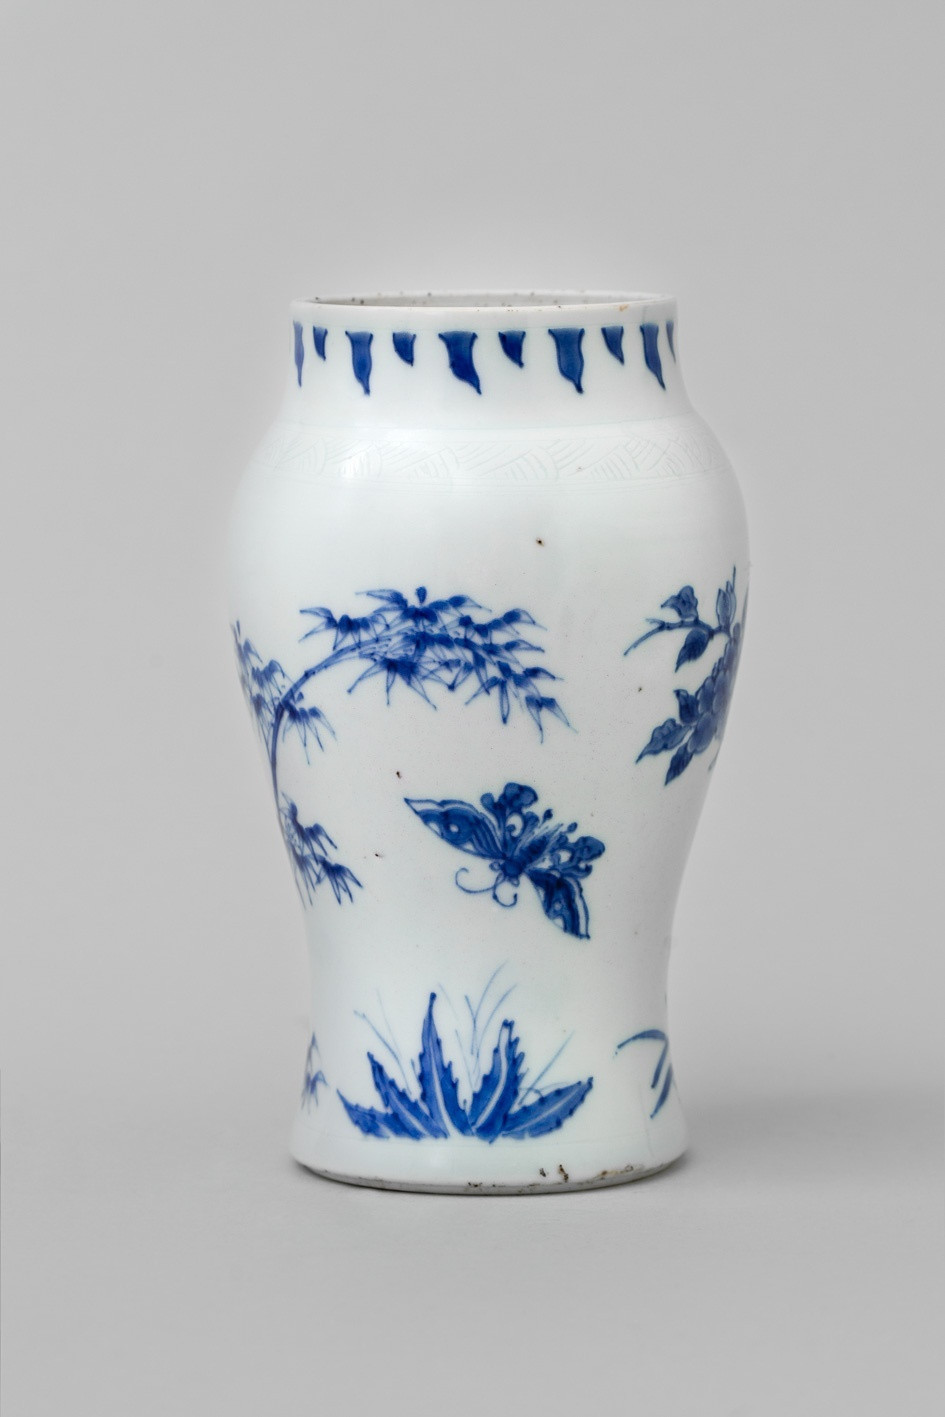 tall bamboo vase of 10 best of bamboo vase bogekompresorturkiye com with a chinese transitional blue and white vase